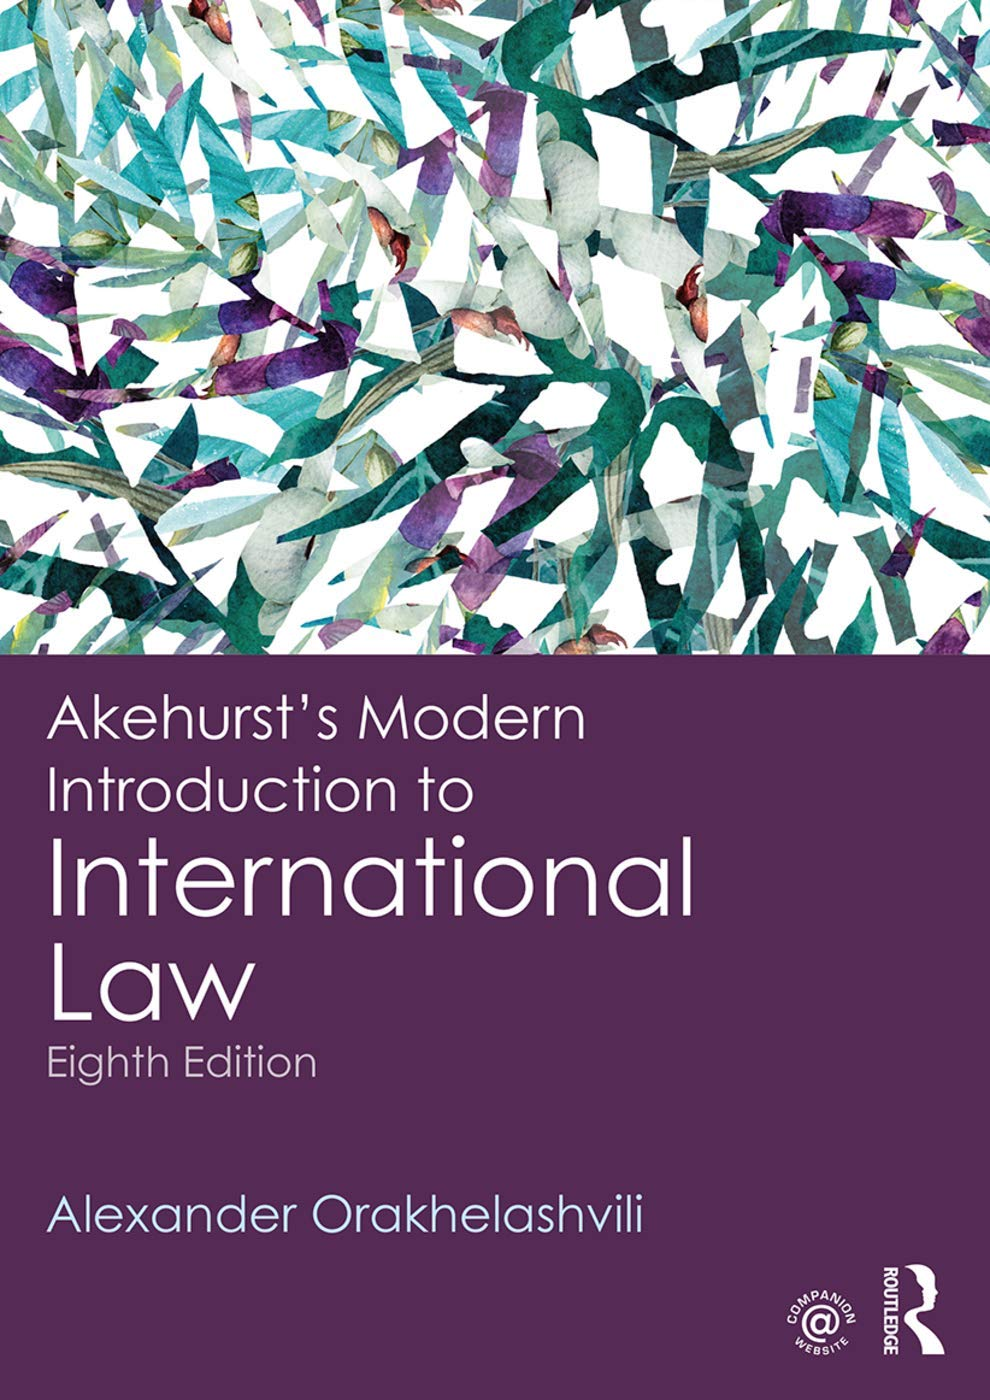 Akehurst's Modern Introduction to International Law